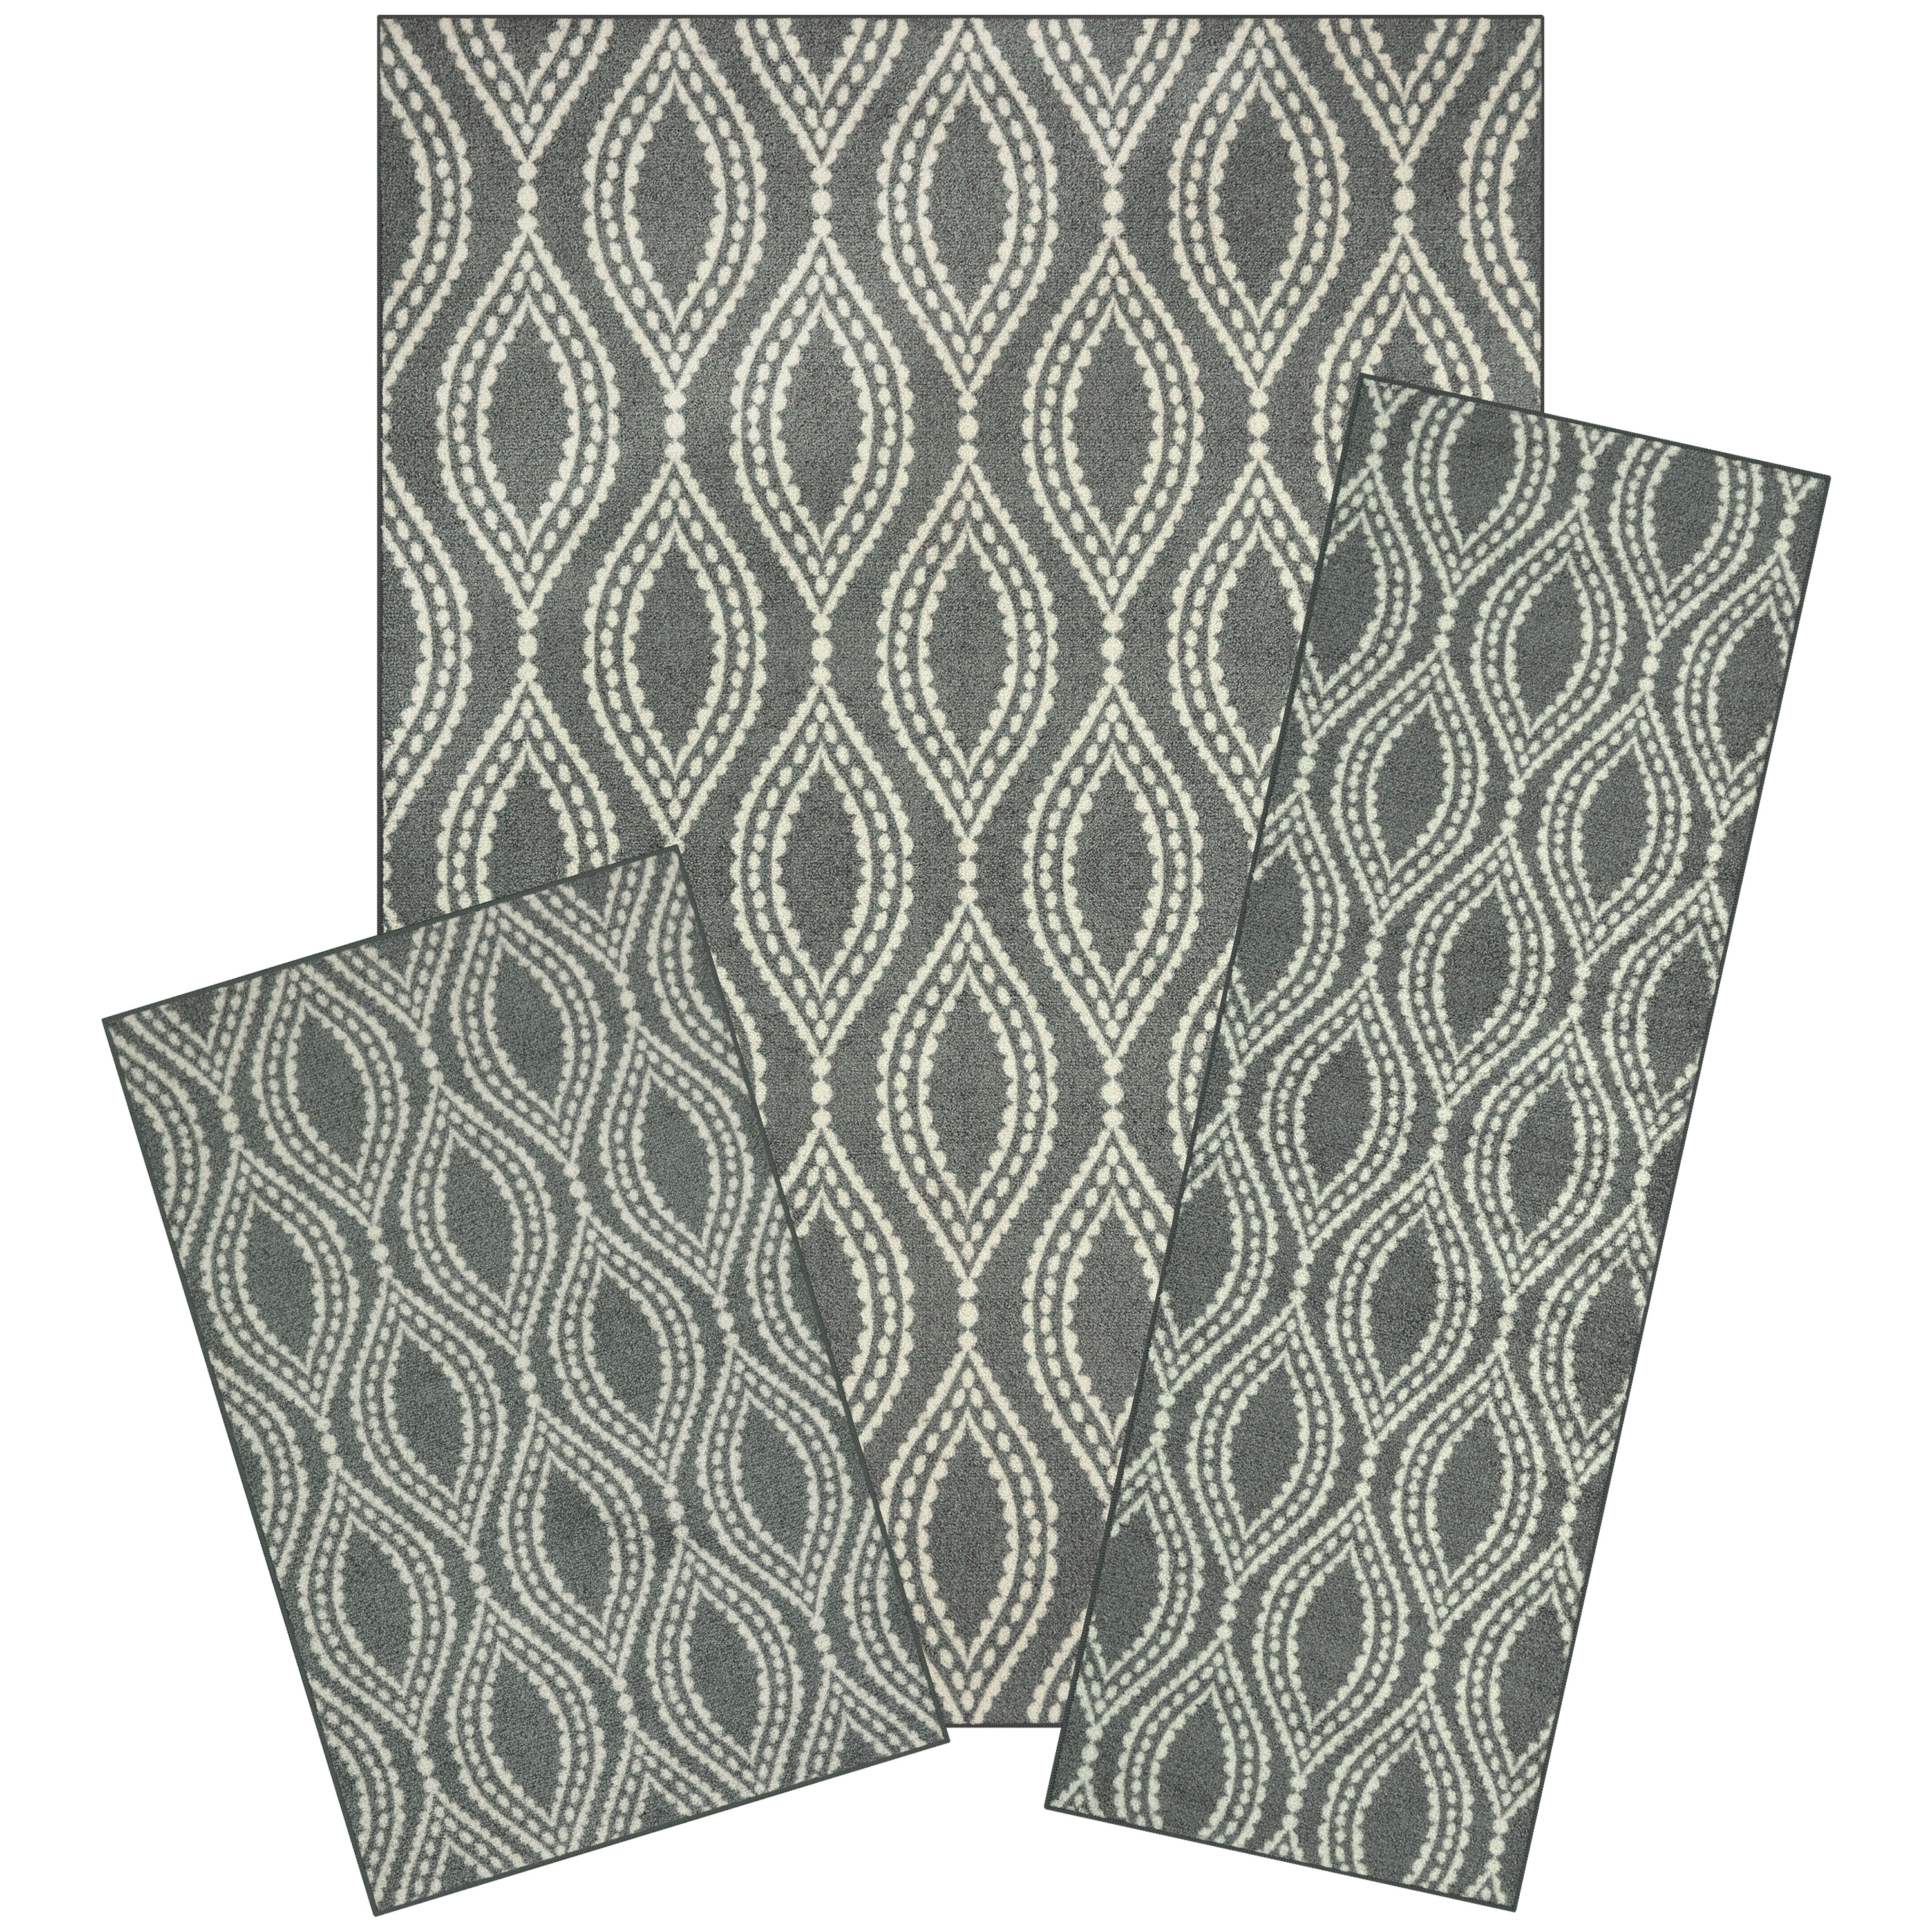 Mainstays Easton Dotted Ogee 3-Piece Area Rug Set, Multiple Colors